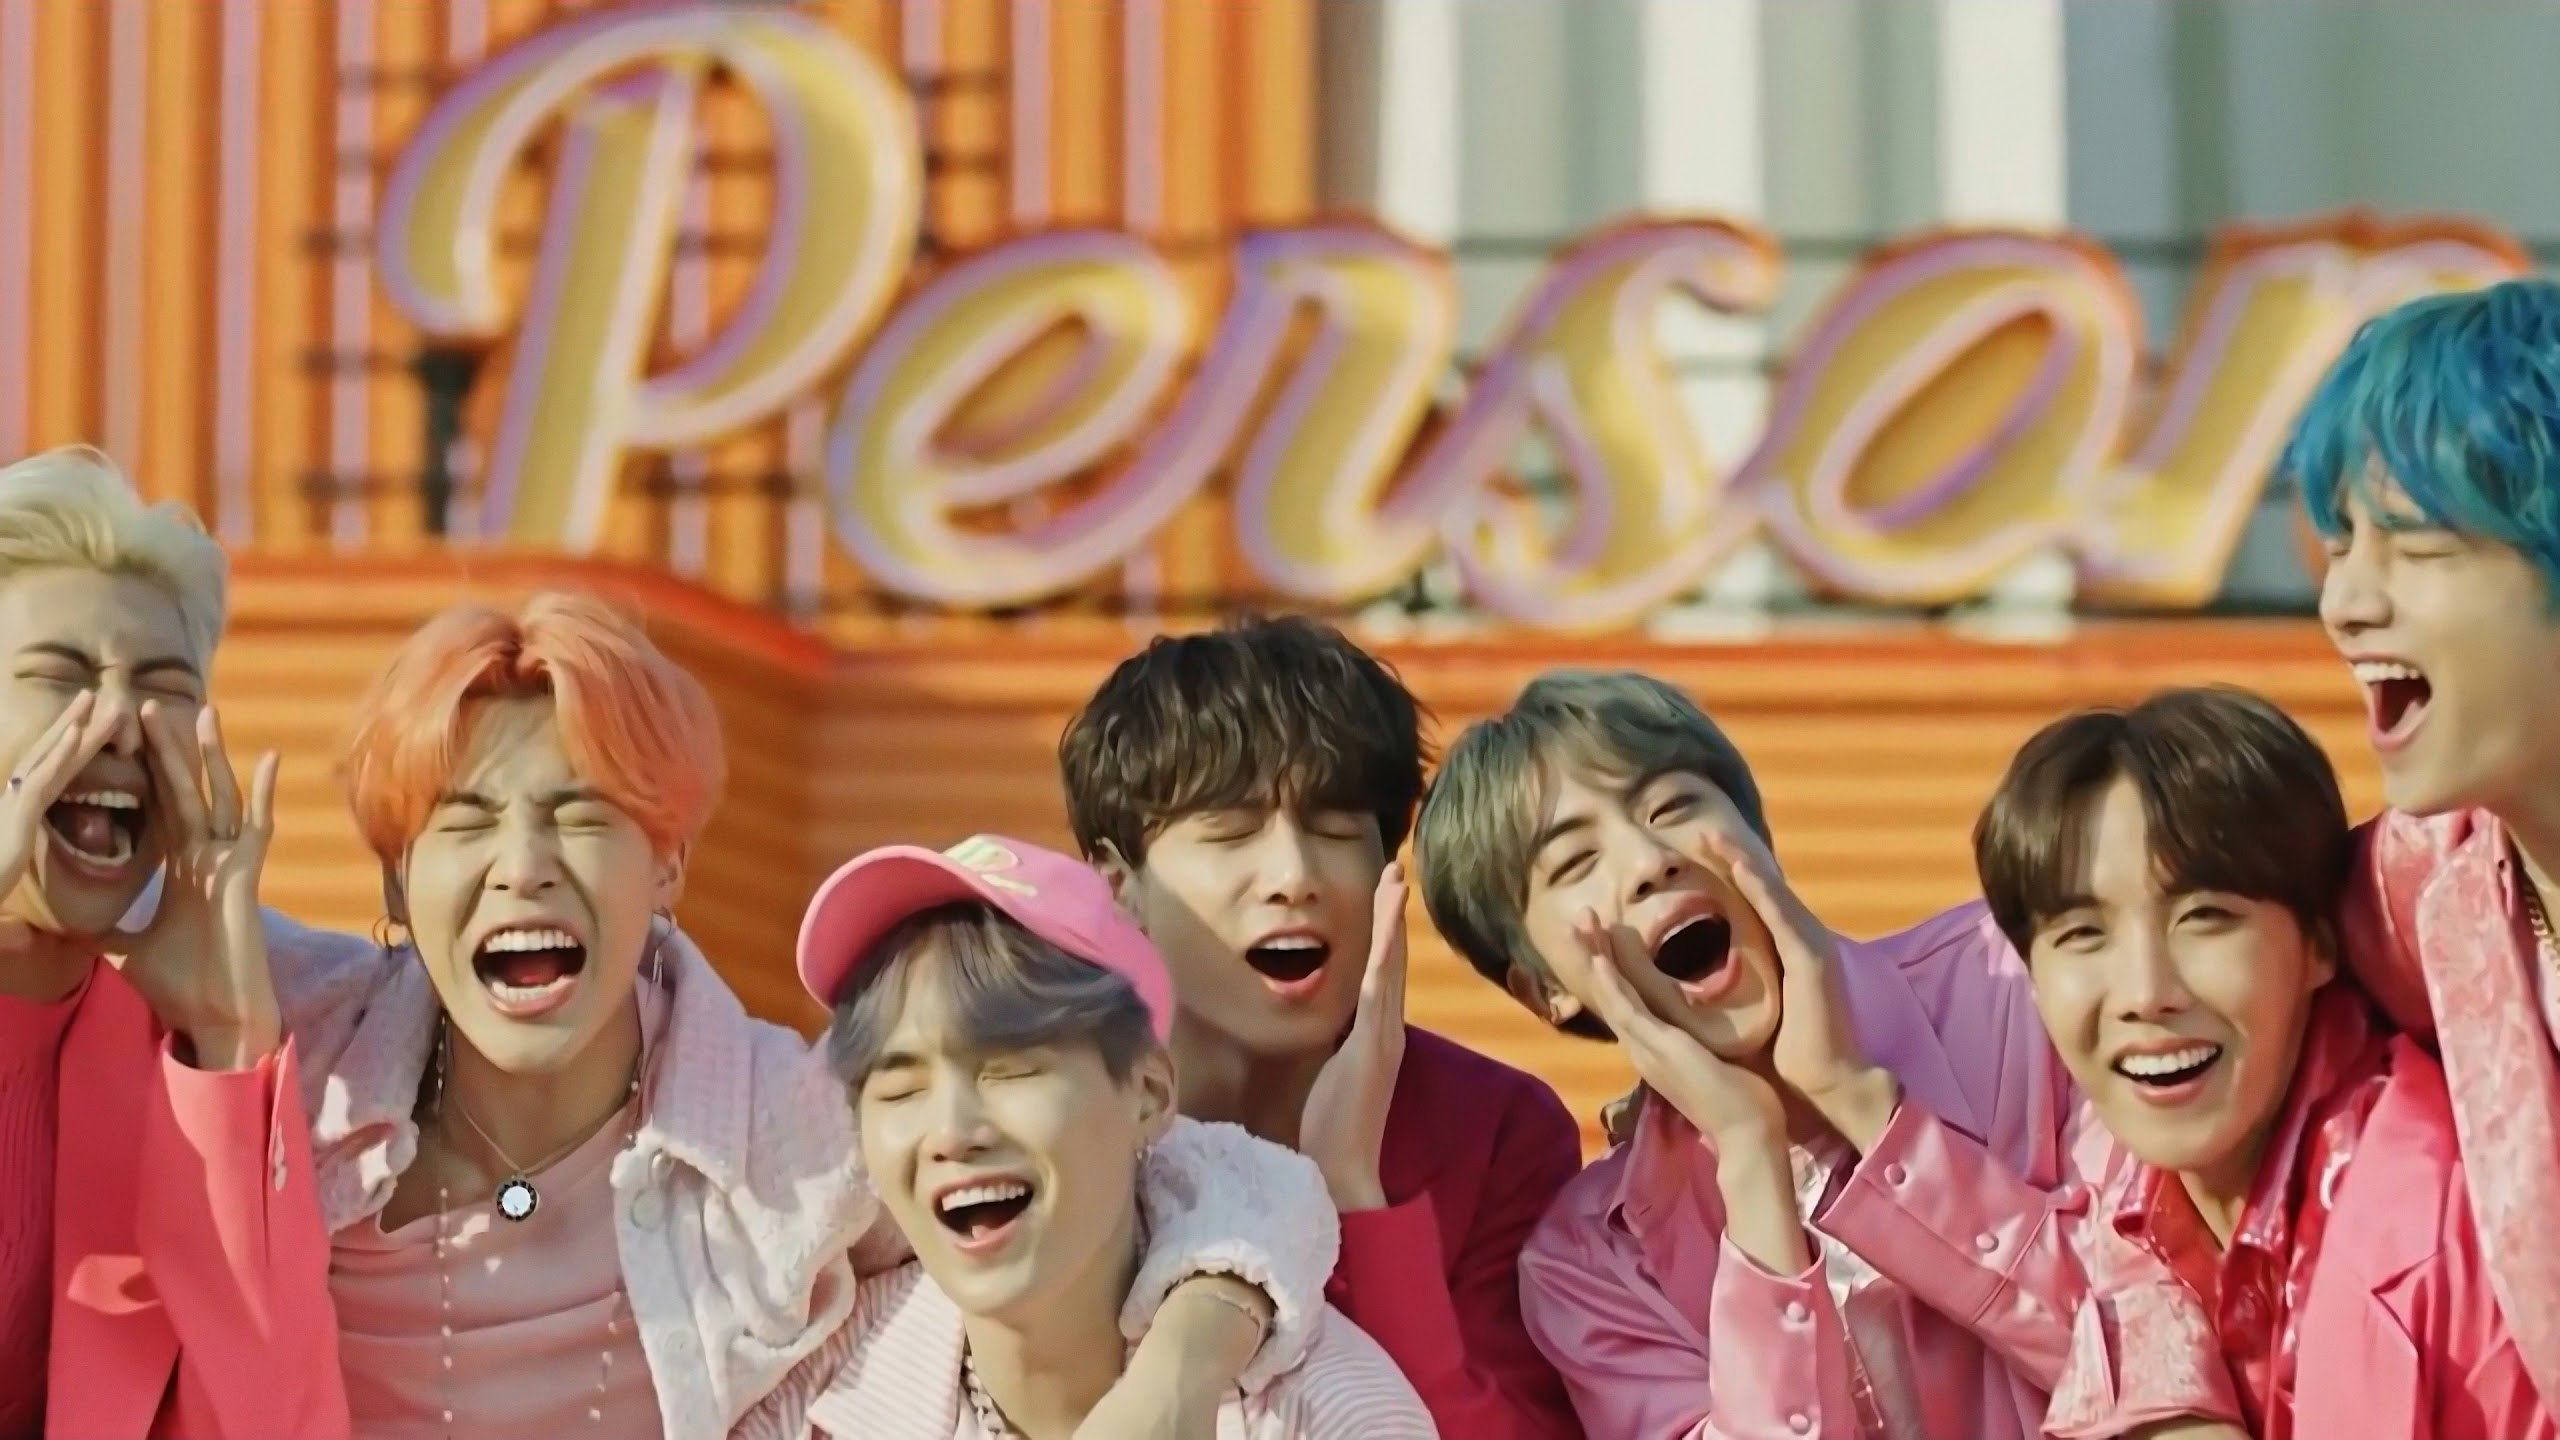 bts boy with luv all members uhdpaper.com 4K 10